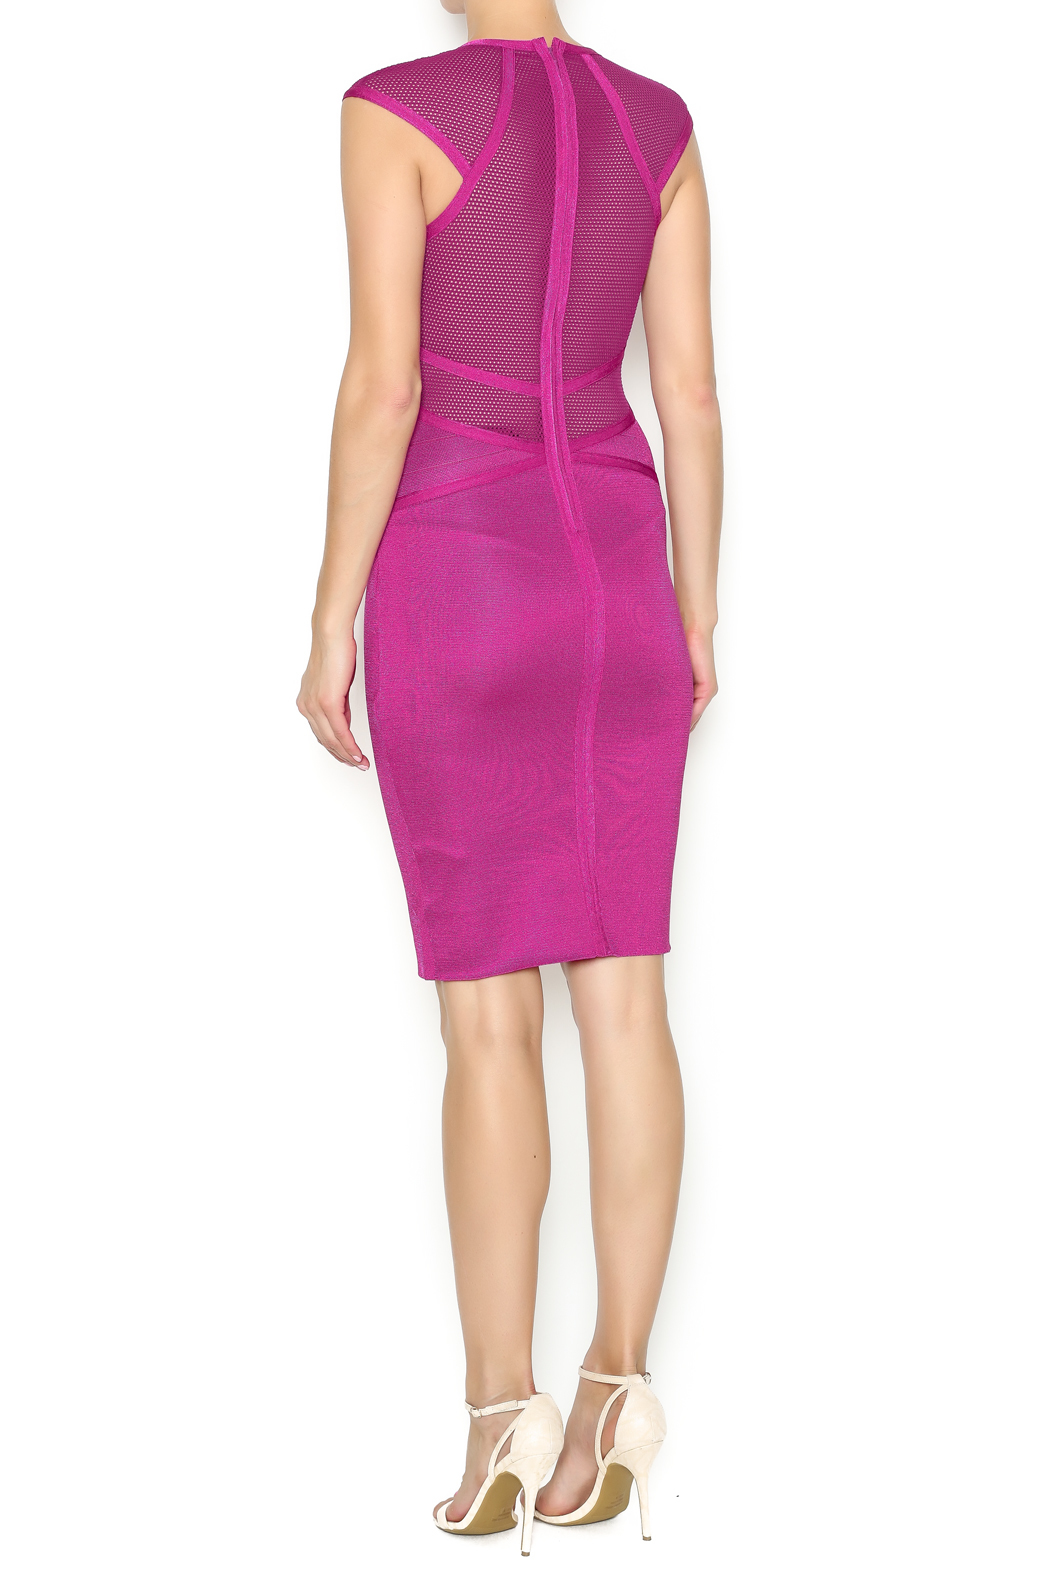 Next boutique pink bodycon dress from new york by next shoptiques Pink fashion and style pink dress